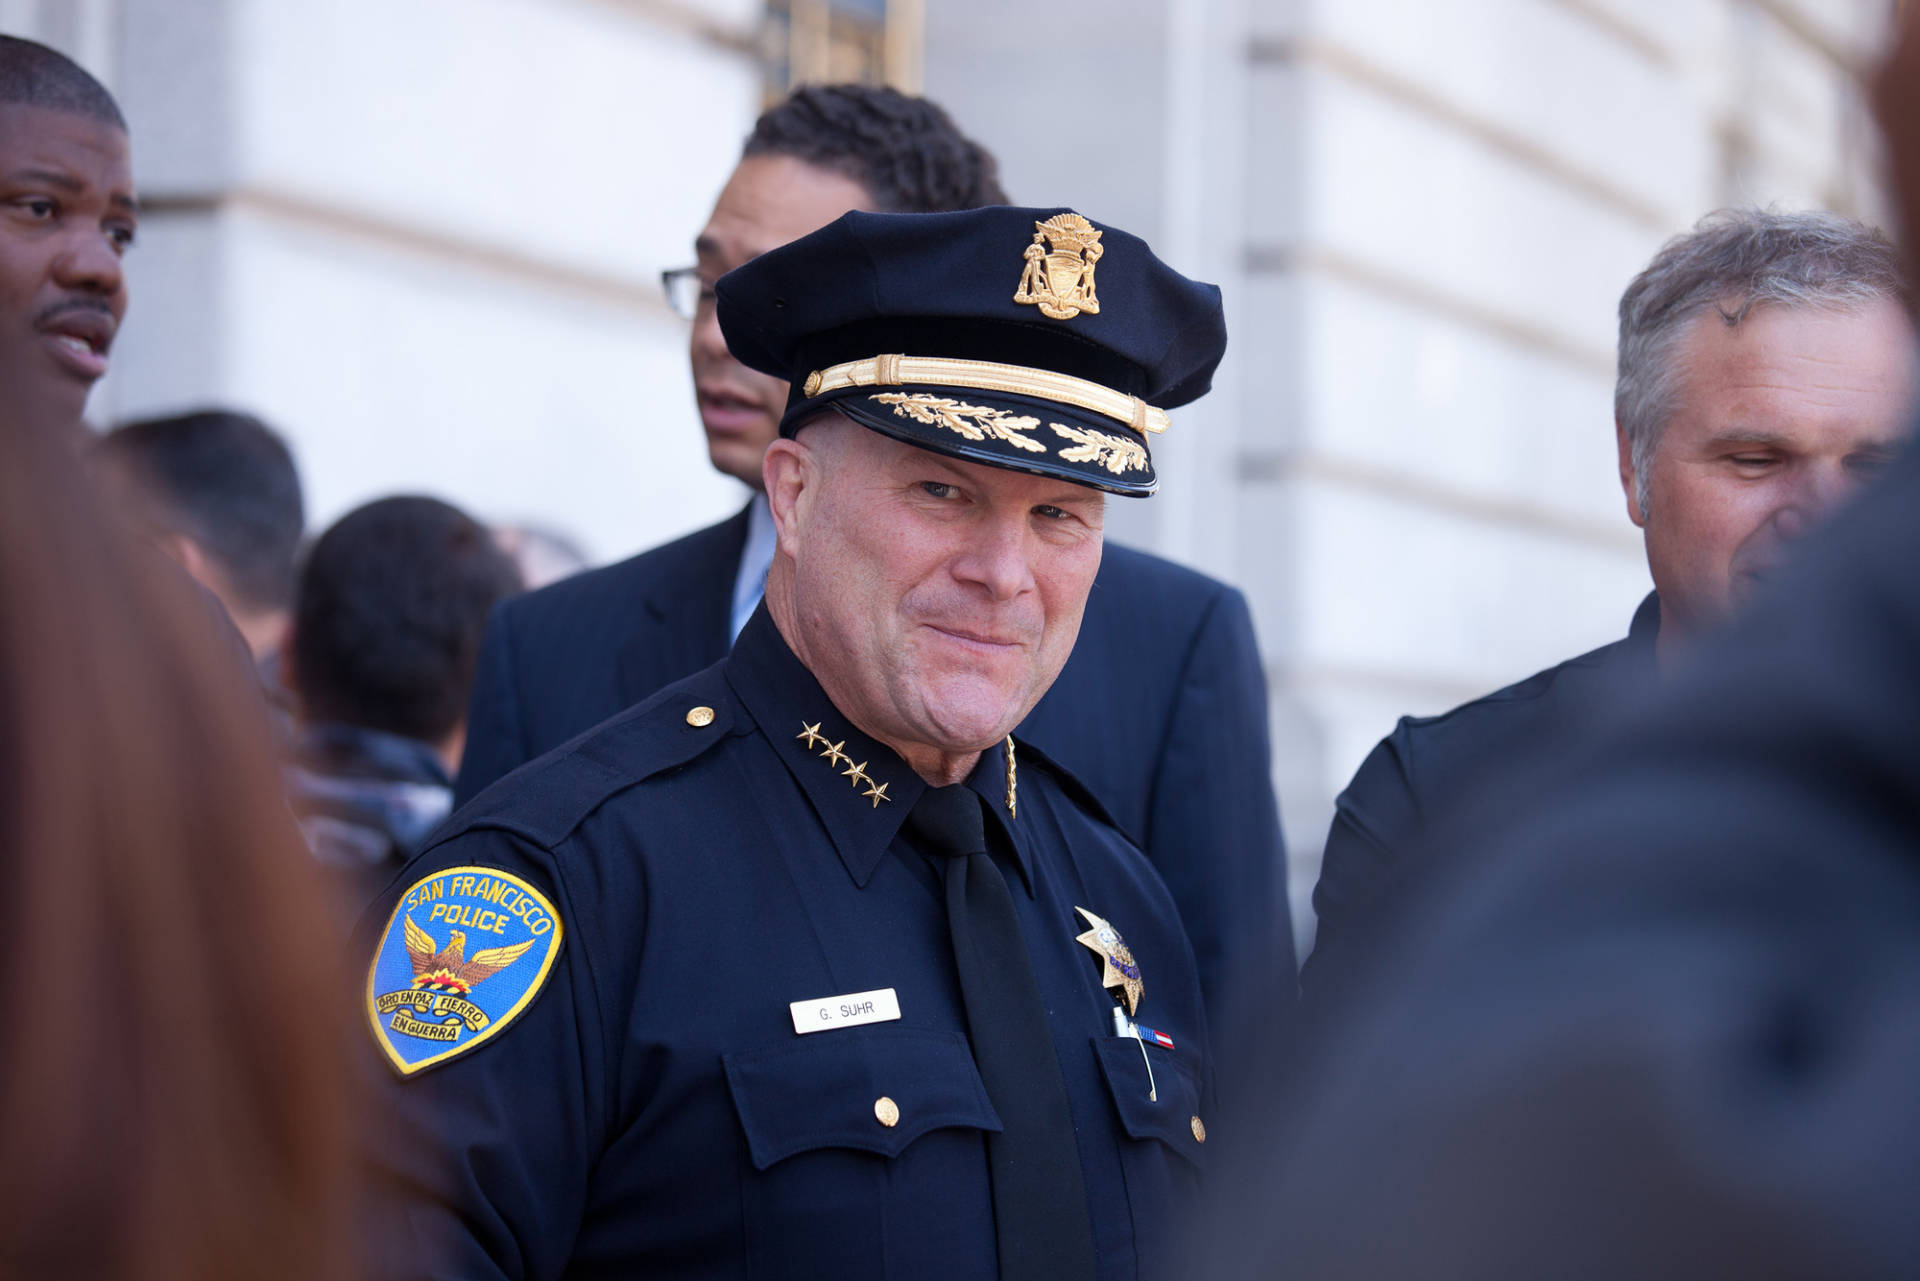 San Francisco Police Chief Greg Suhr, shown here in 2013, spoke at USF about problems with witness identification. (Deborah Svoboda/KQED)